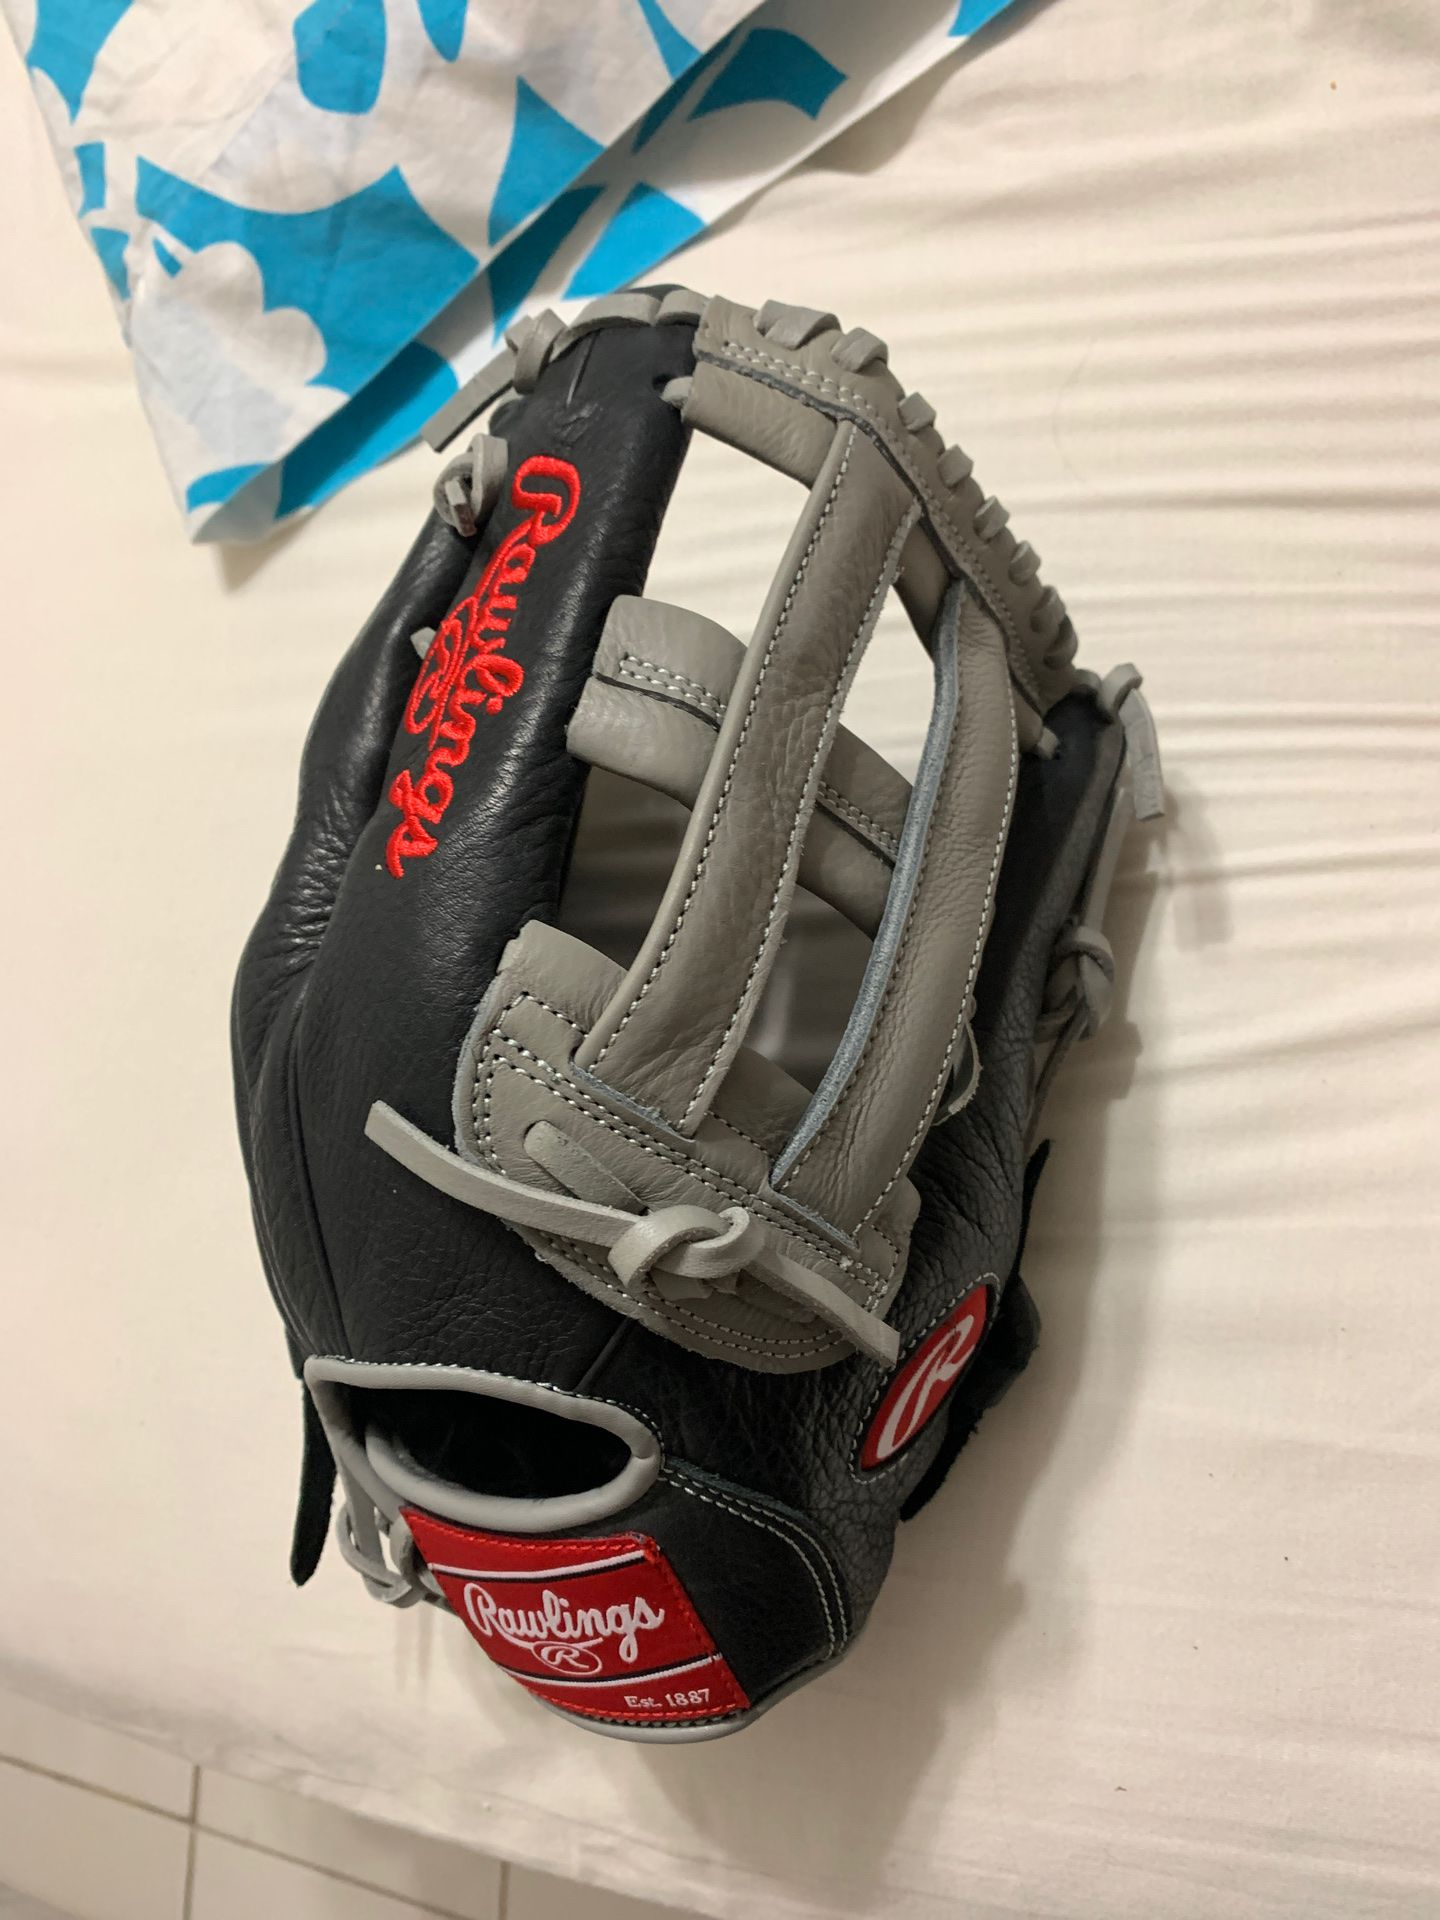 Rawlings right ball glove. new